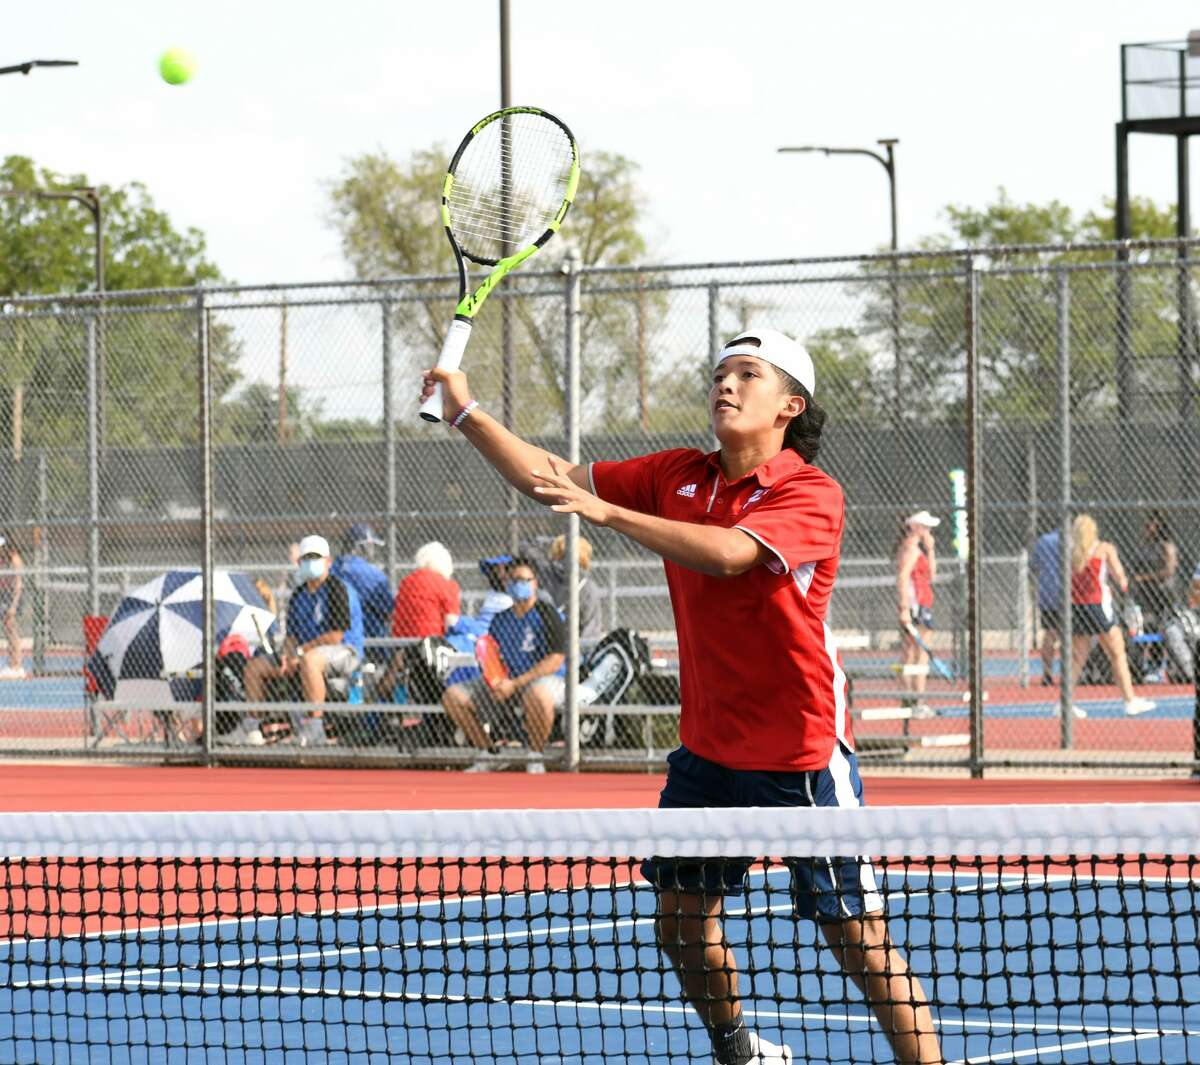 Plainview's Joseph Alcozer hits a return shot during first flight doubles action against Amarillo Palo Duro in a high school tennis dual on Tuesday, Sept. 15, 2020 at Plainview High School.